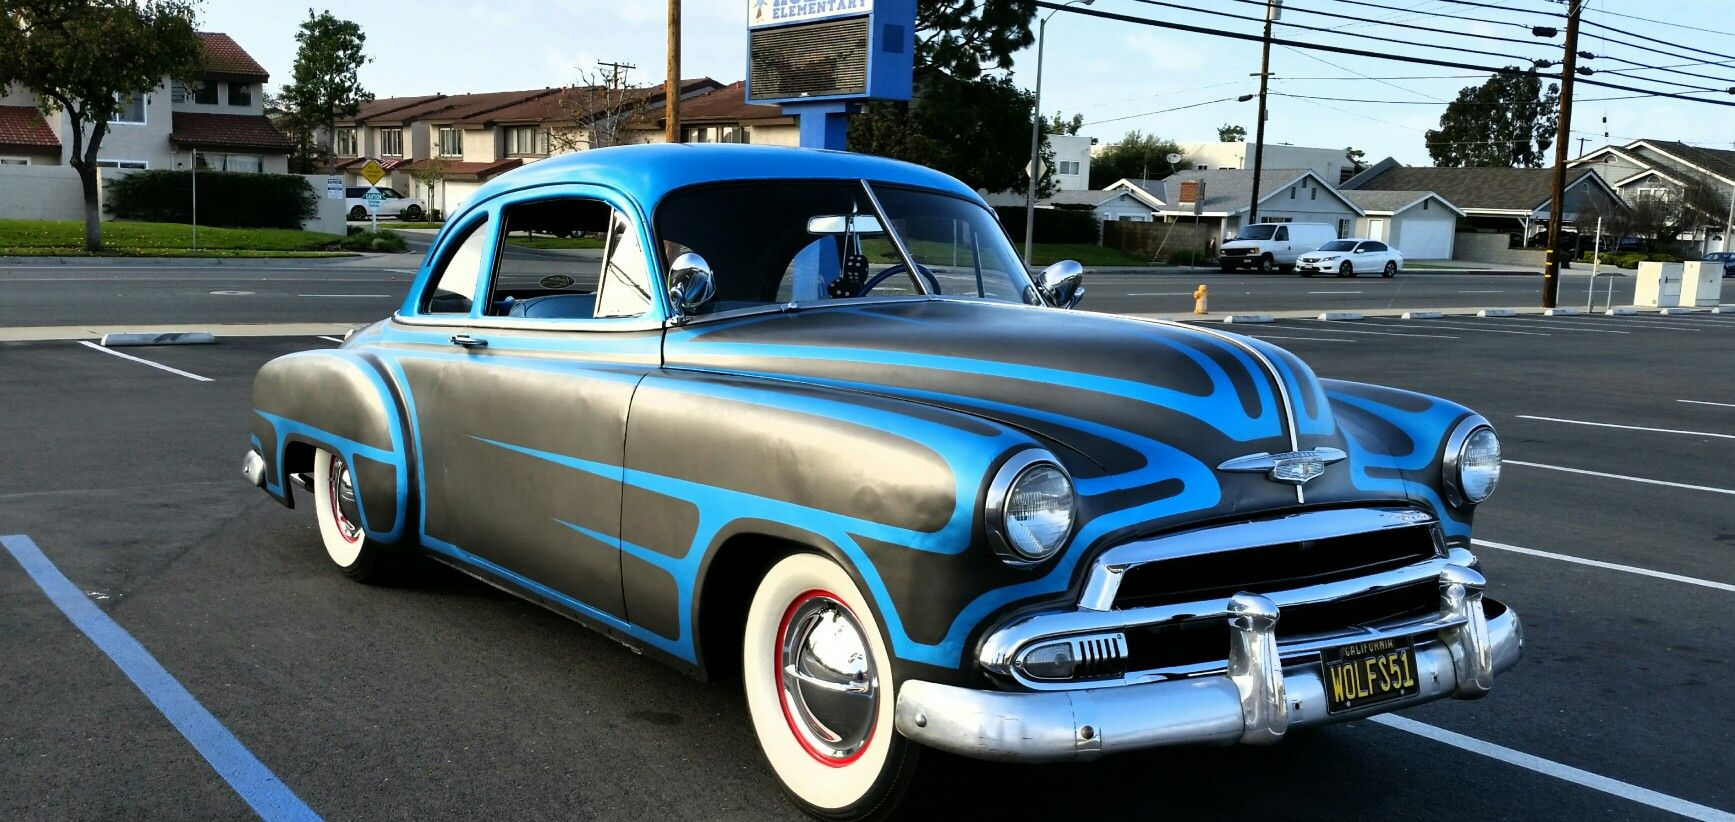 Coupe 1951 chevy sport coupe : 1951 chevy coupe with scallops and metal flake roof | 49 - 52 ...